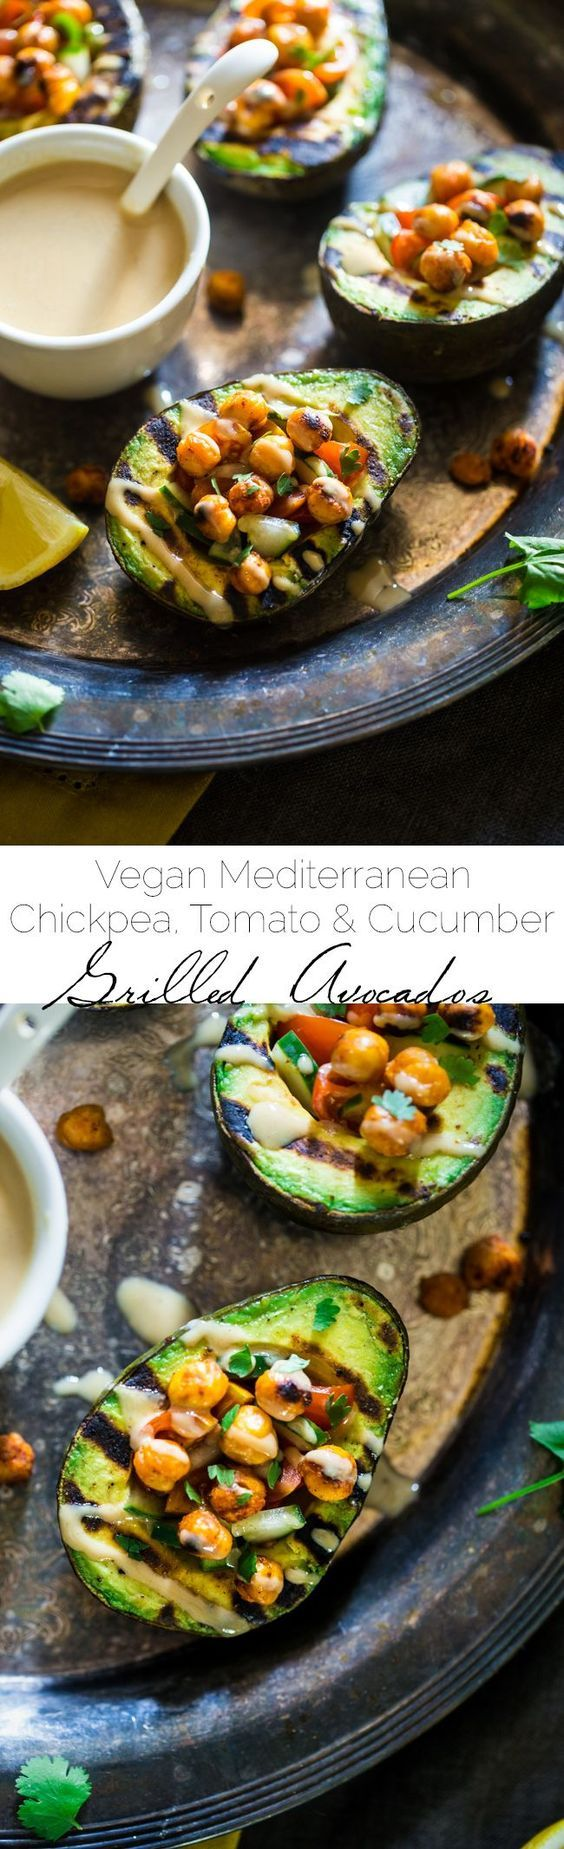 Vegan Mediterranean Chickpea Stuffed Grilled Avocado - Grilled avocado is stuffed with fresh cucumber, tomato and crispy grilled chickpeas! A drizzle of tahini makes this a delicious, healthy and easy, vegan dinner for under 250 calories! | Foodfaithfitness.com | #HealthyEating #CleanEating #ShermanFinancialGroup